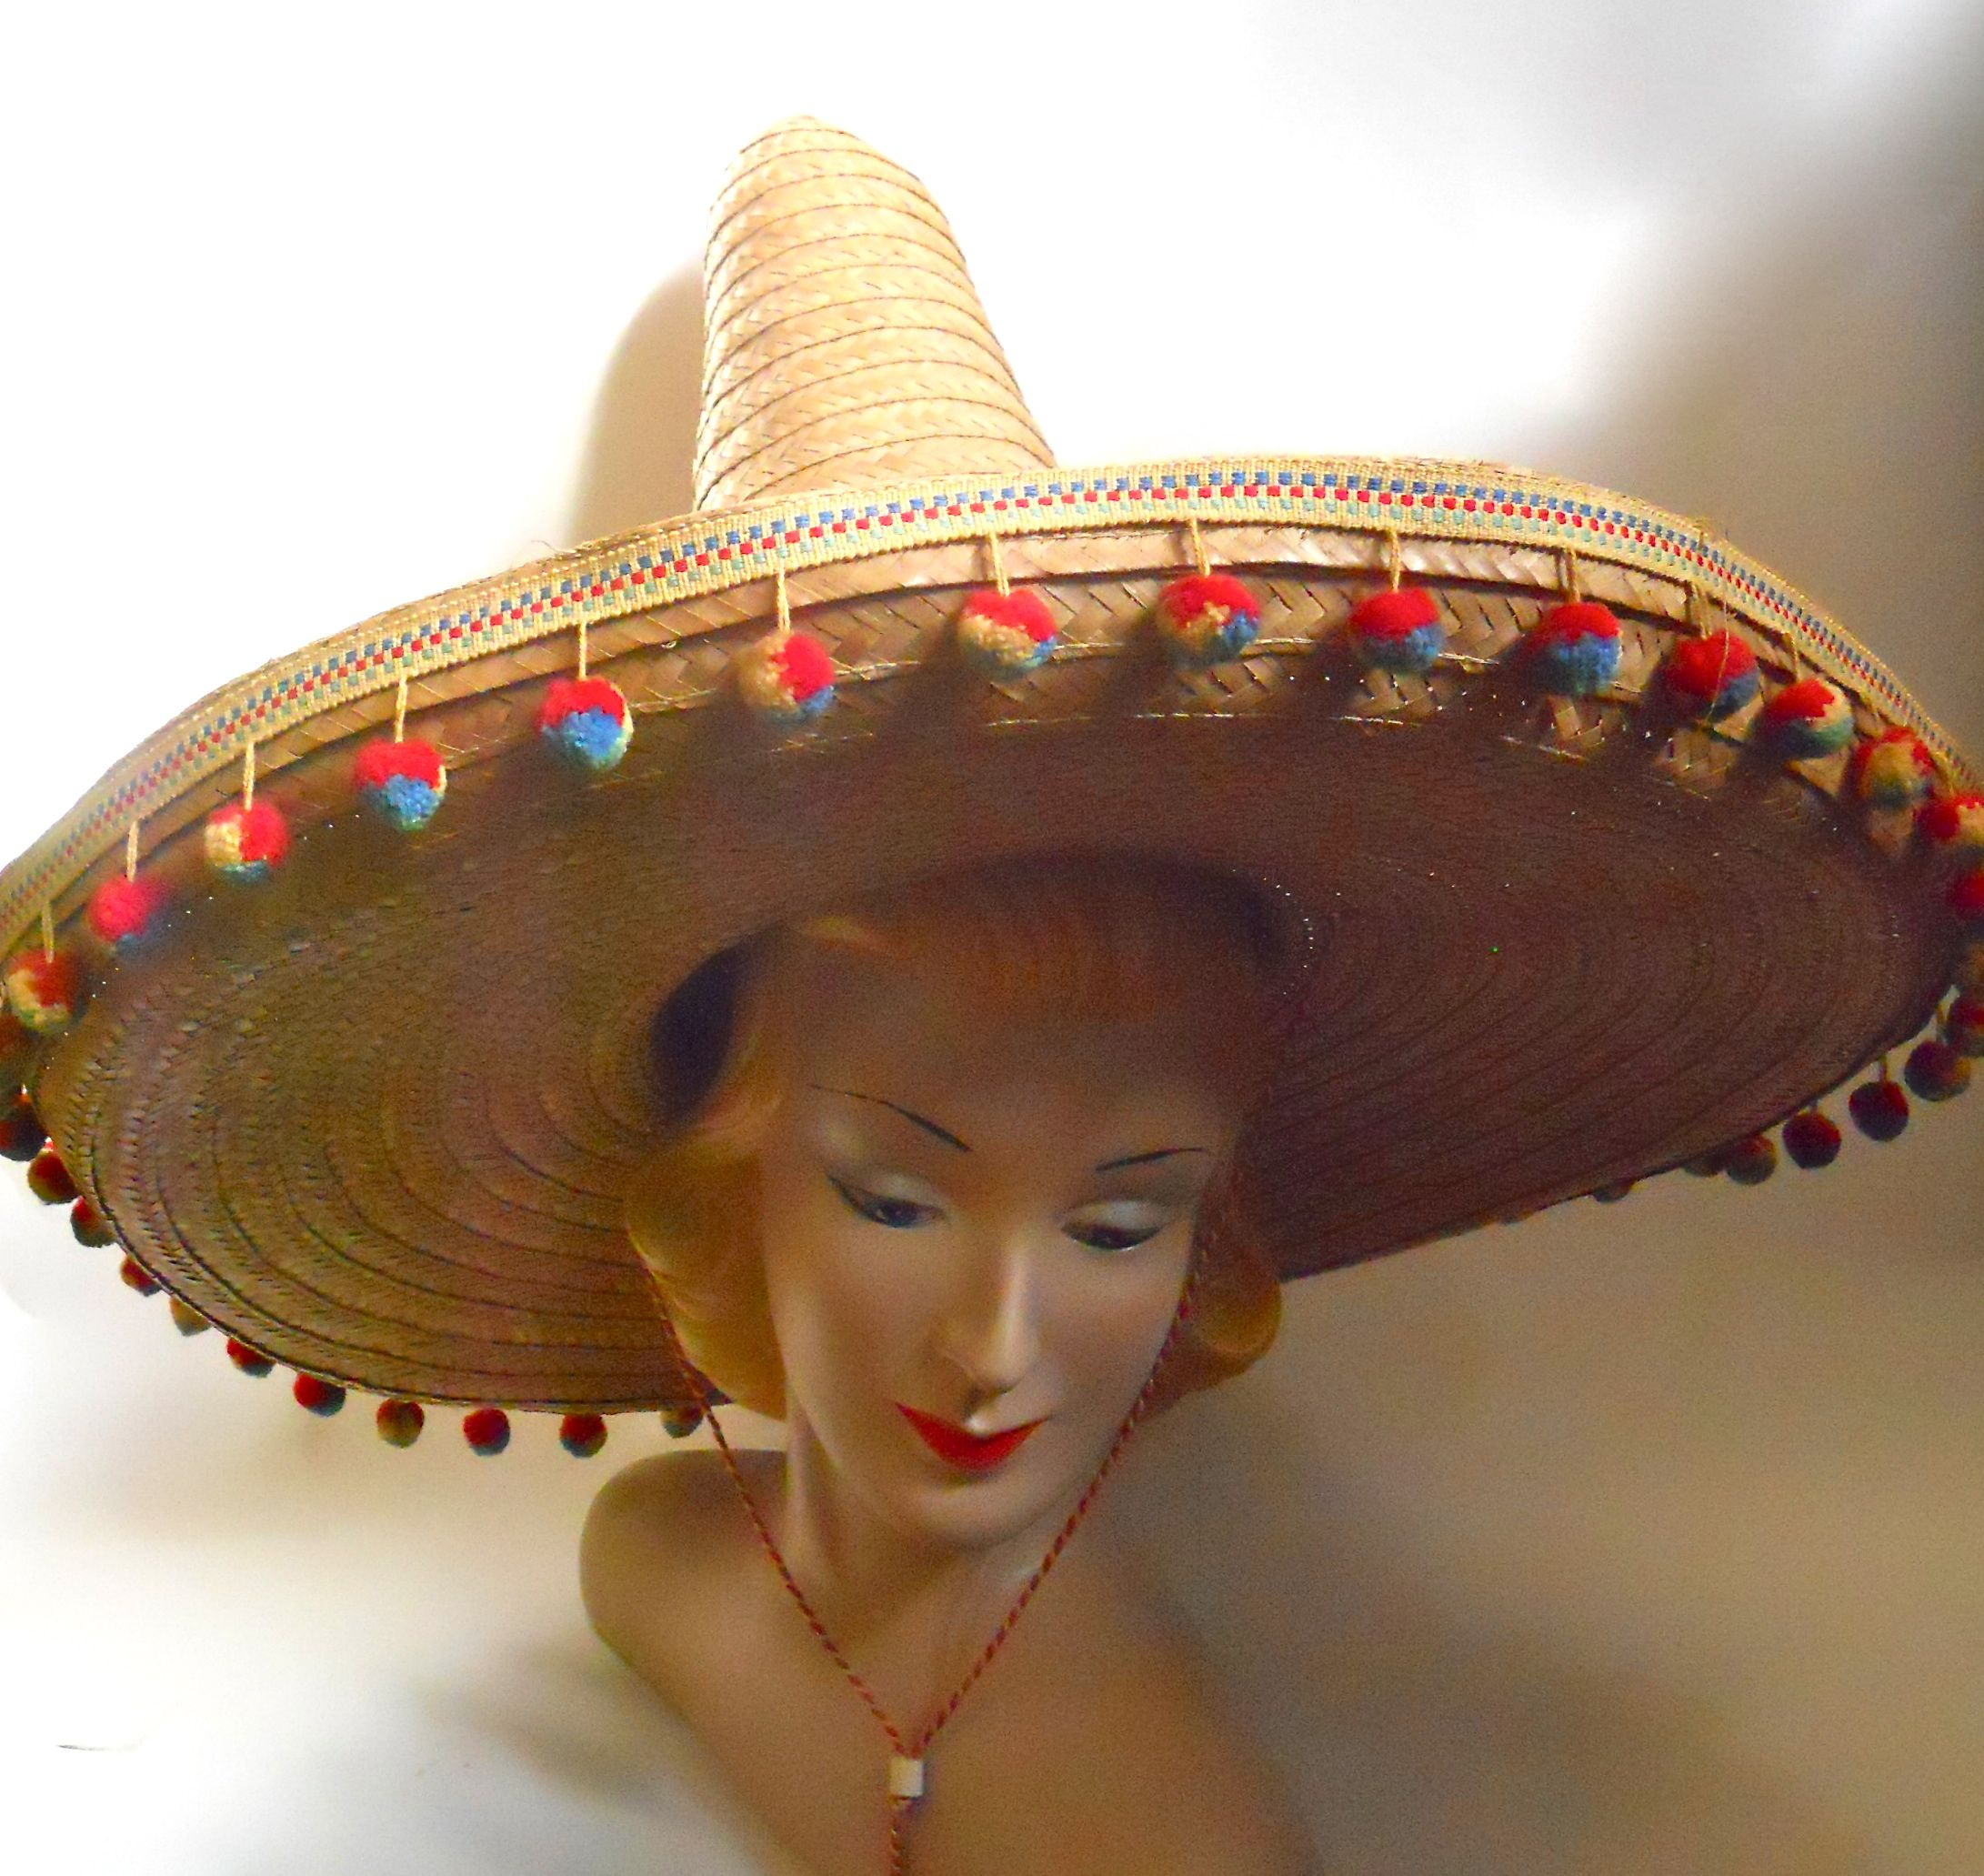 1950s Mexican beach hat with super tall crown   pom pom fringe 4de83b6c95b